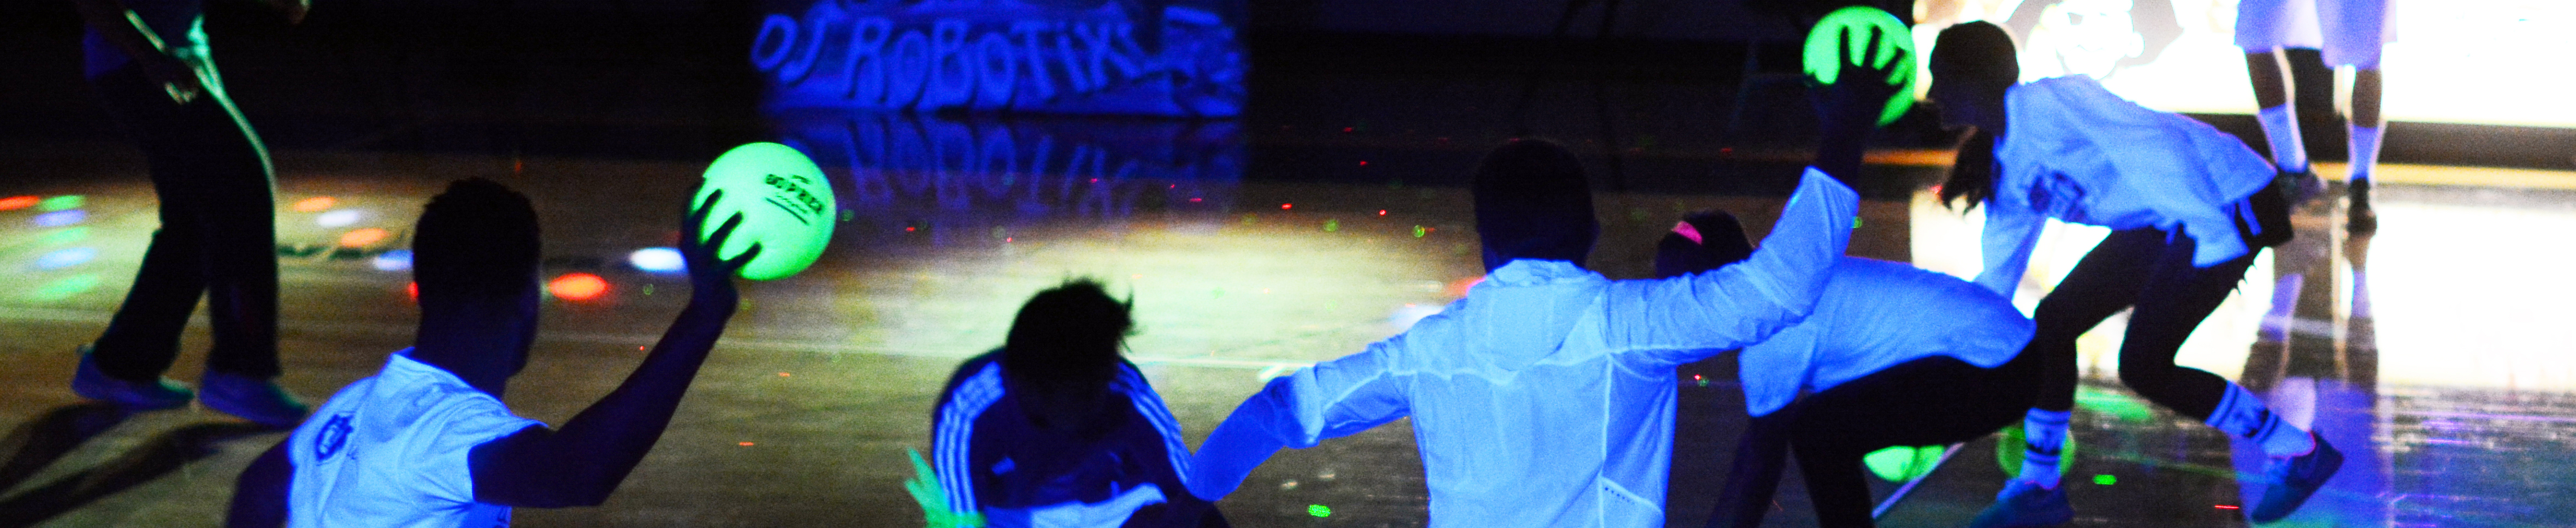 Black Light Dodge Ball